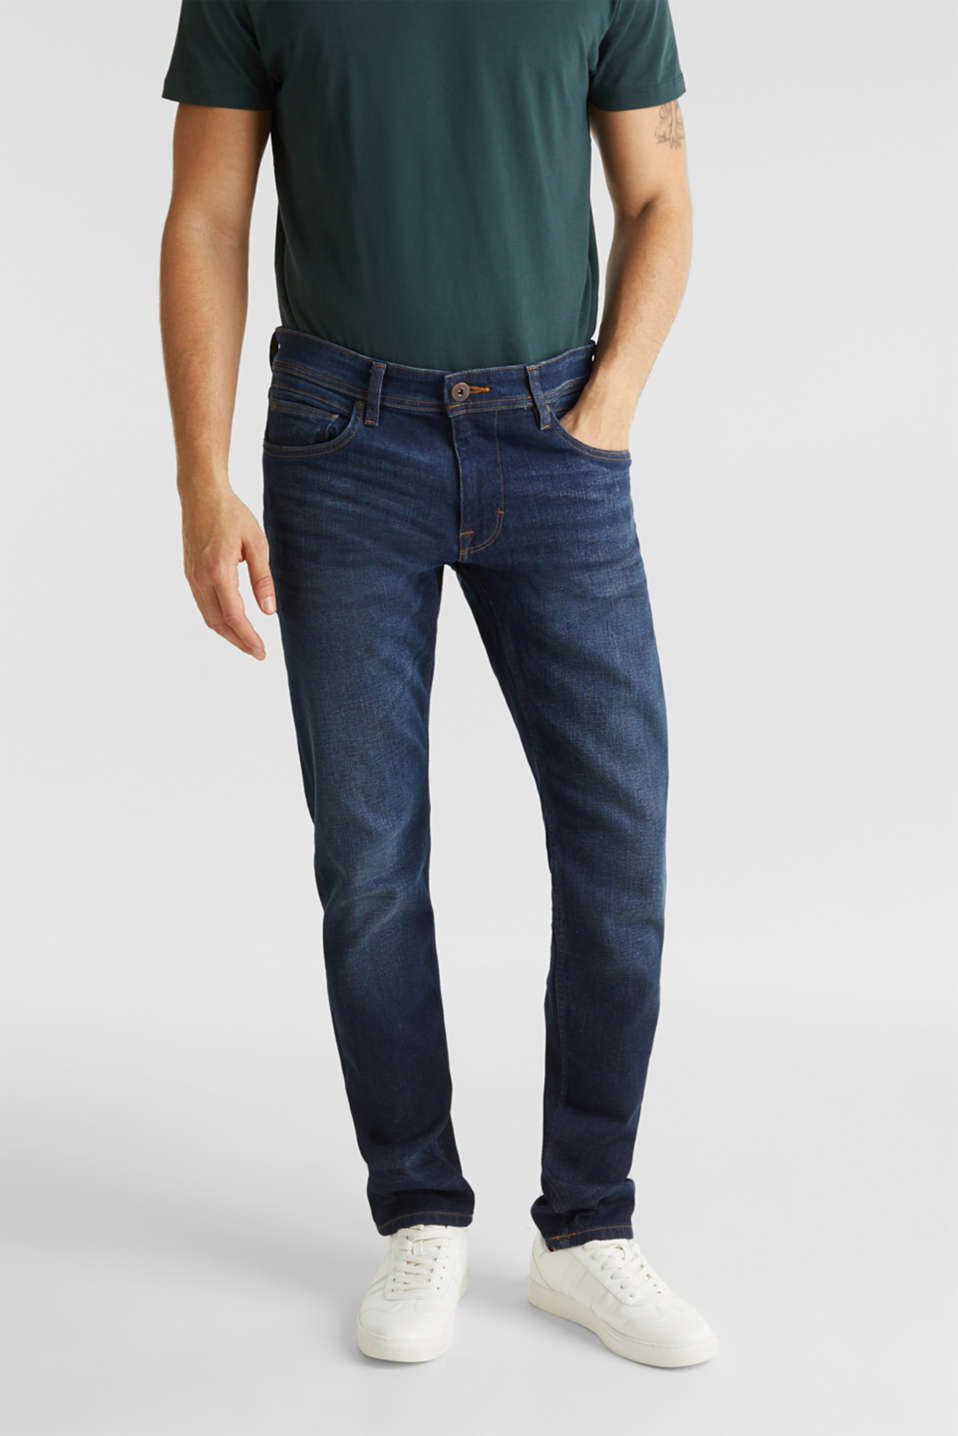 edc - Basis-jeans med stretch